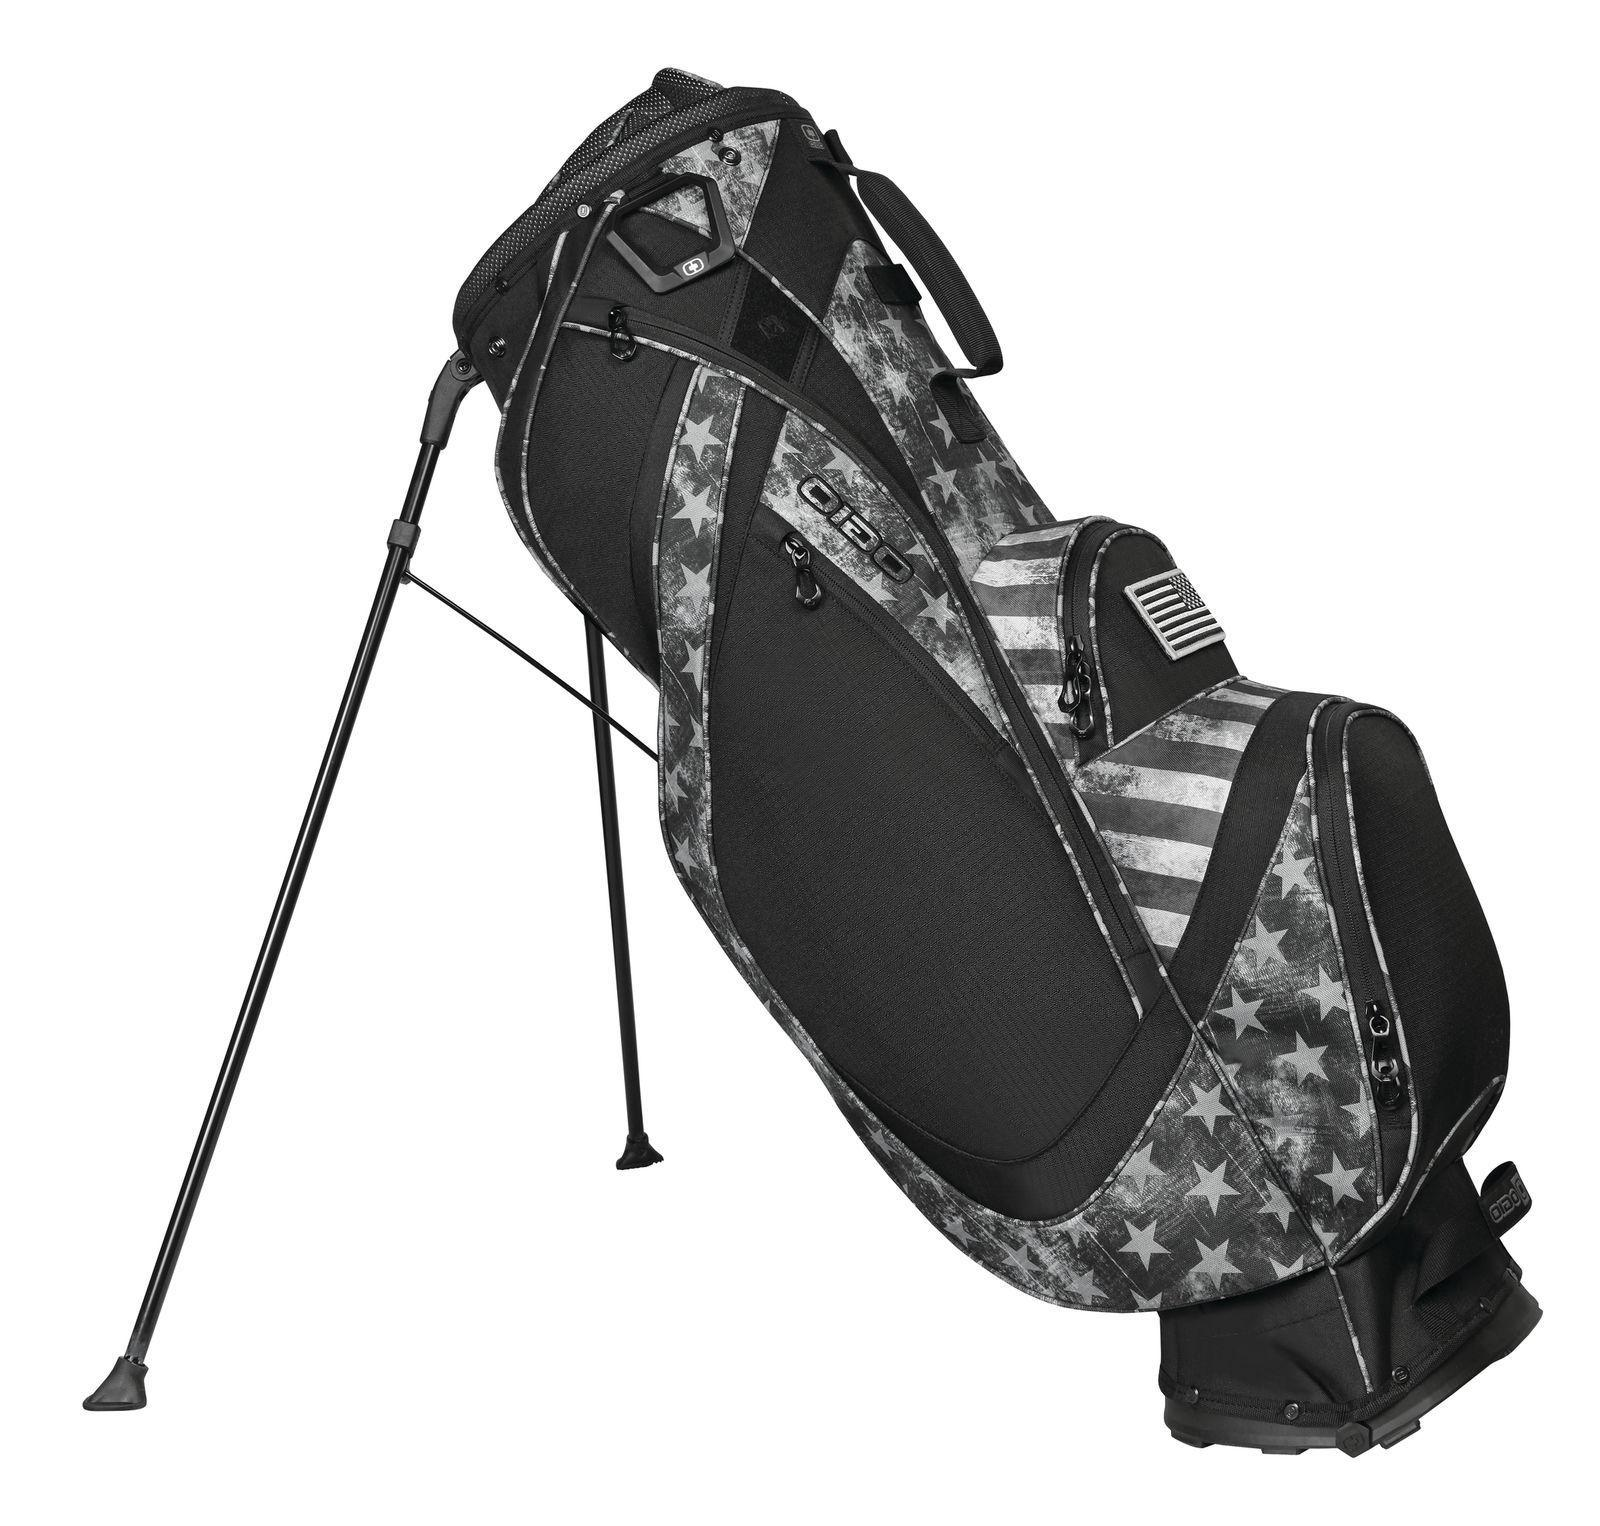 New OGIO BLACK OPS Limited Edition Stand Bag Golf